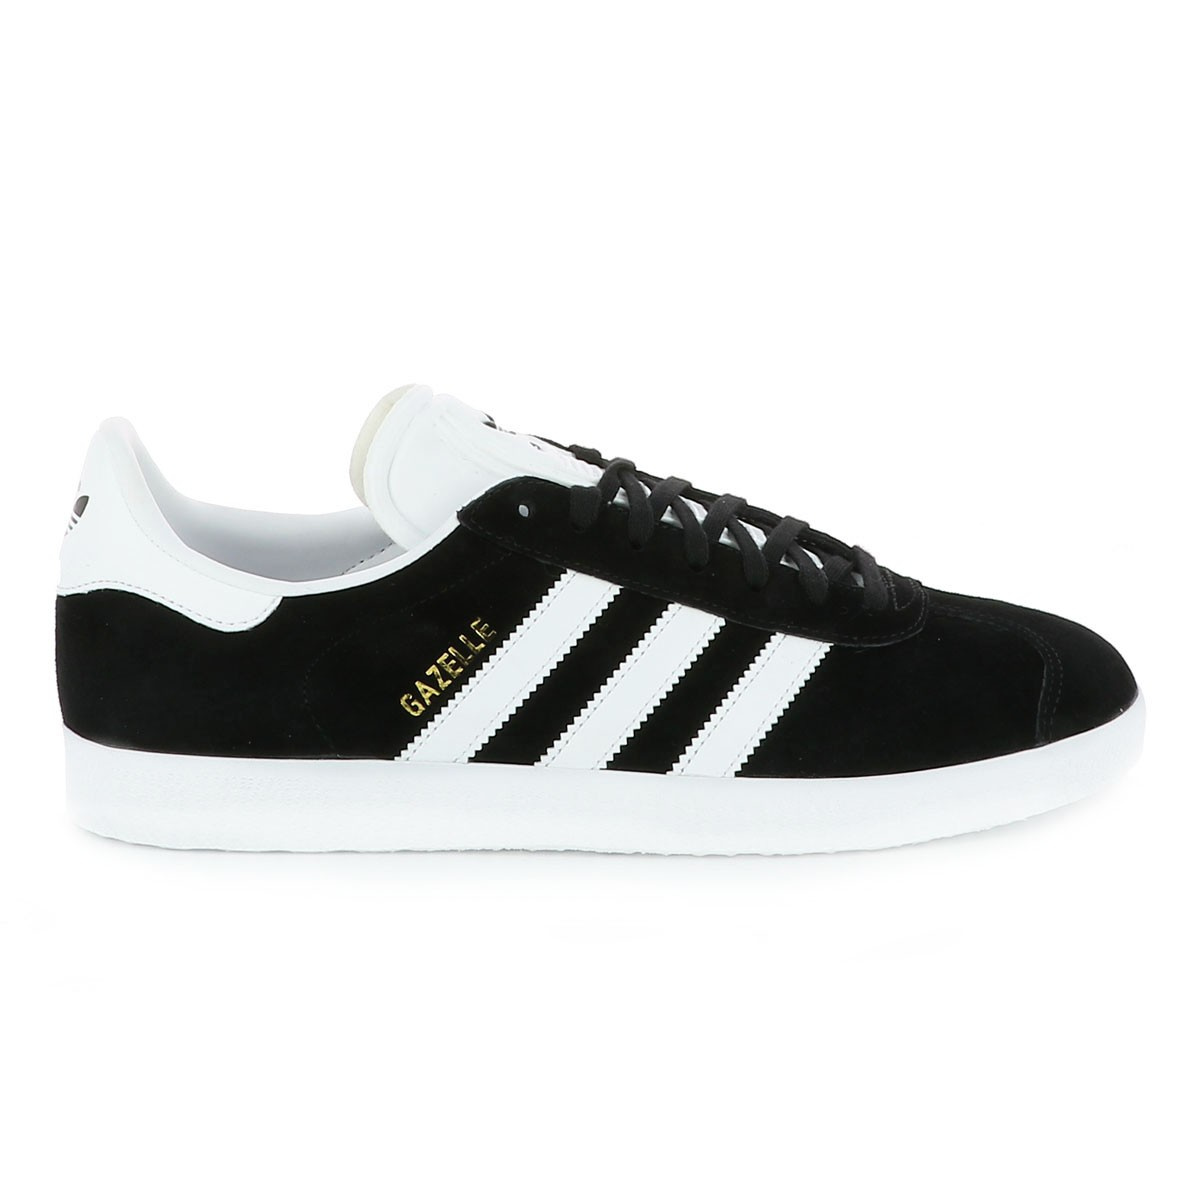 Gazelle Originals Baskets Noir Adidas Homme HIYD9WE2